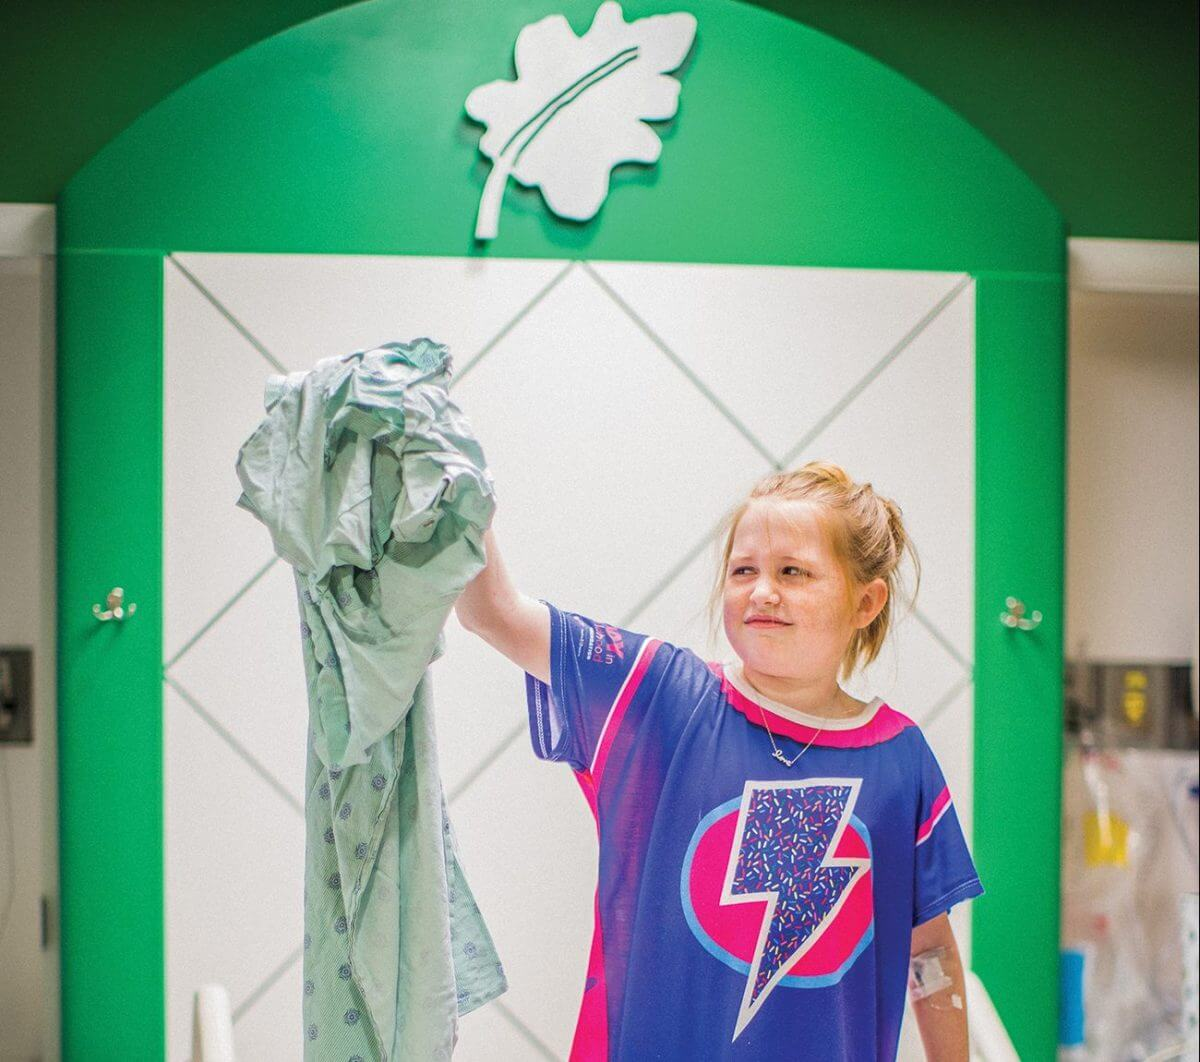 Evie Baxter, an 11-year-old patient at Children's Memorial Hermann Hospital, sports her Starlight gown while holding an old, traditional gown for comparison (Credit: Nick de la Torre).